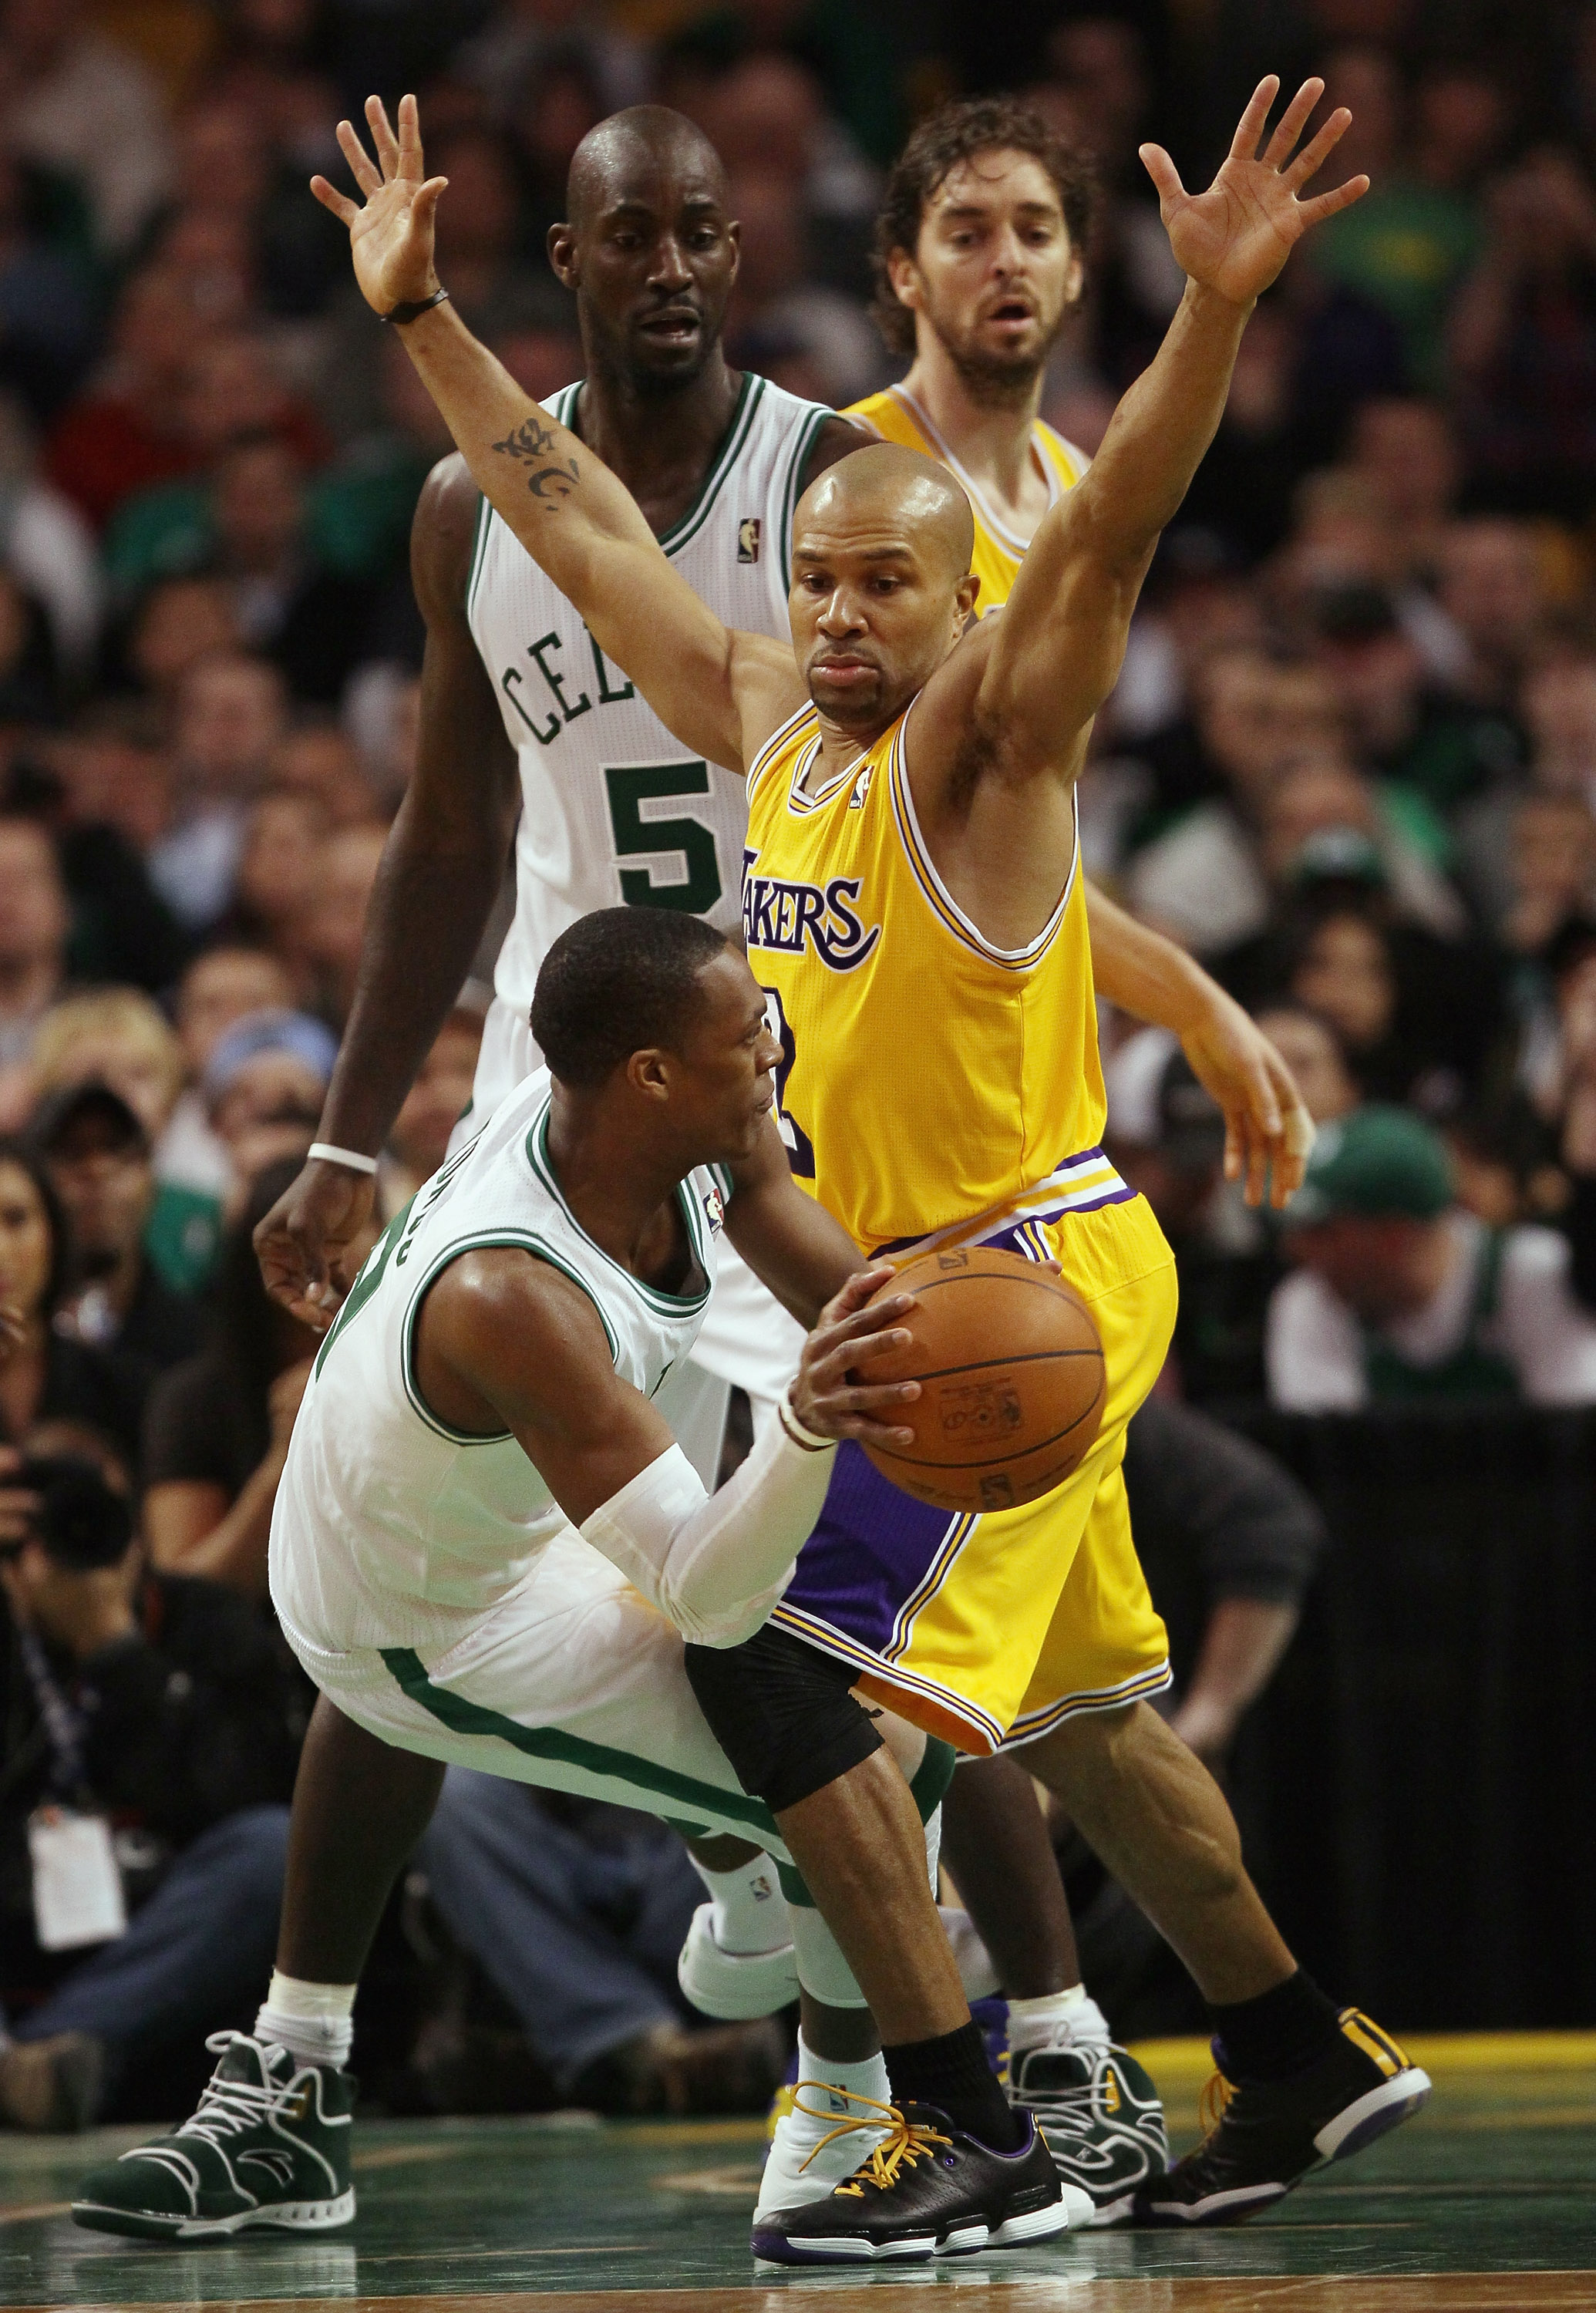 BOSTON, MA - FEBRUARY 10:  Rajon Rondo #9 of the Boston Celtics passes the ball as Derek Fisher #2 of the Los Angeles Lakers defends on February 10, 2011 at the TD Garden in Boston, Massachusetts.  The Lakers defeated the Celtics 92-86. NOTE TO USER: User